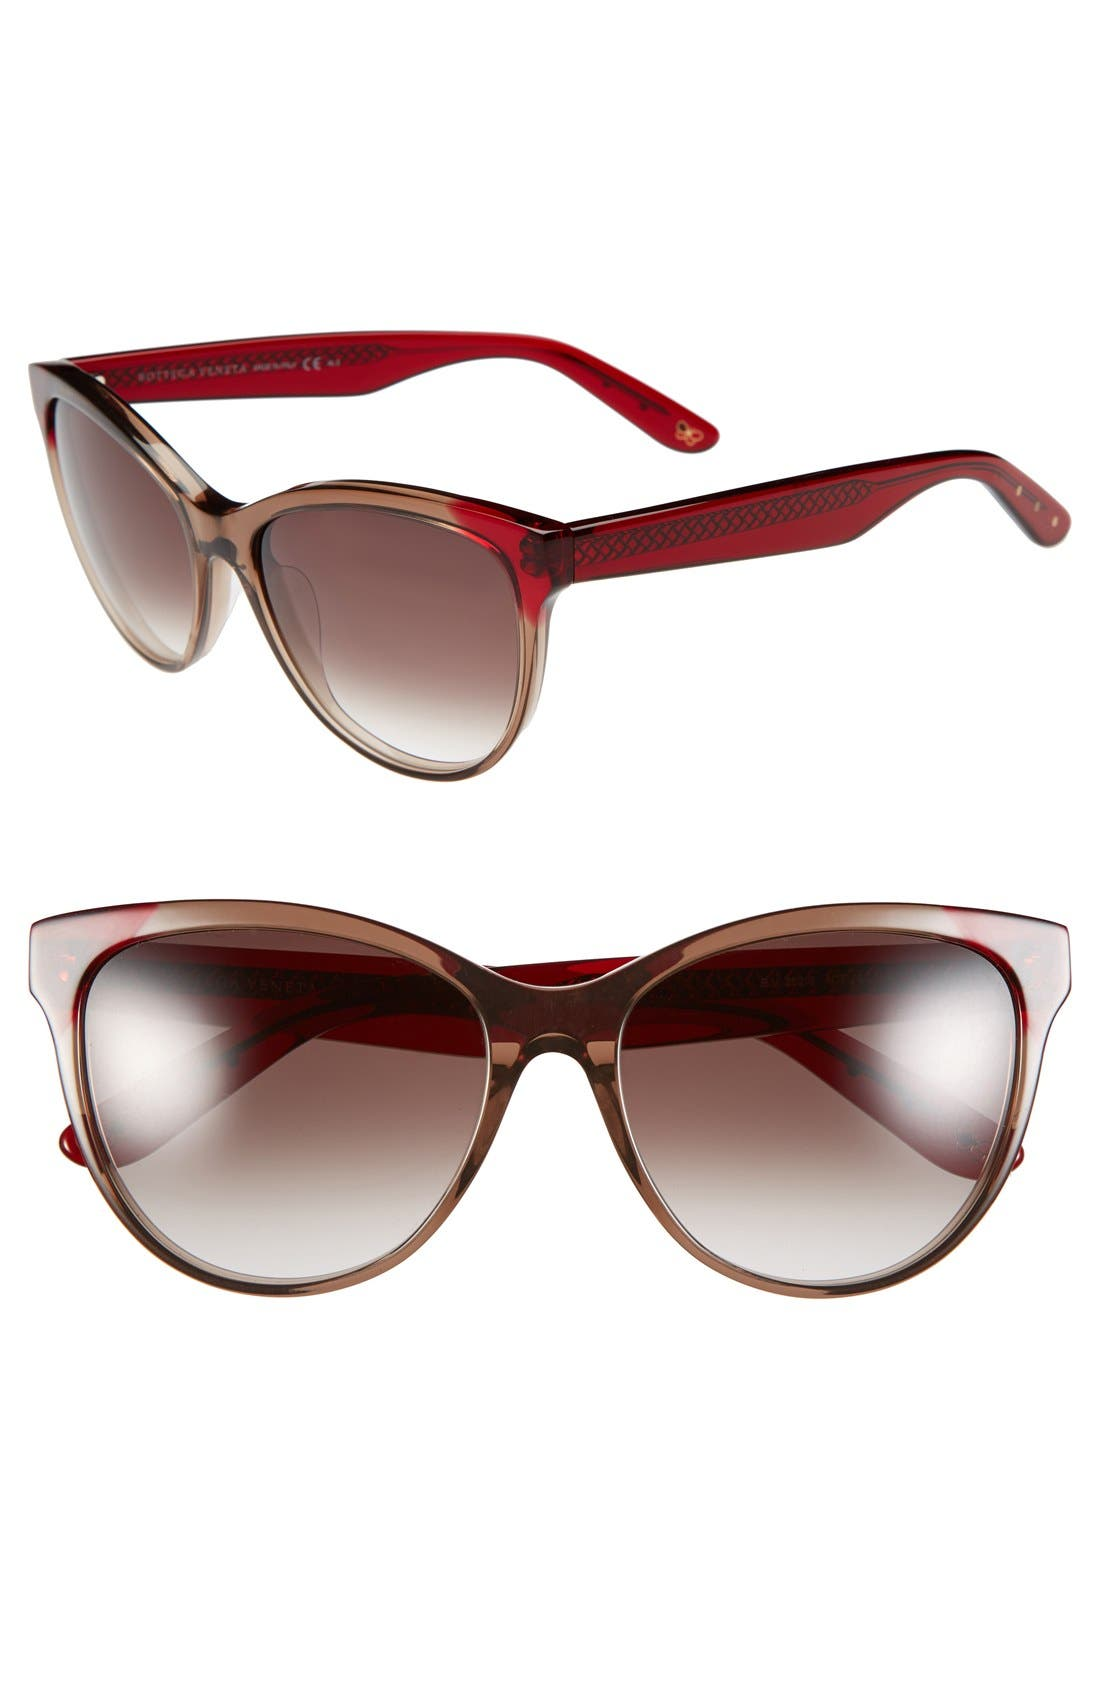 Alternate Image 1 Selected - Bottega Veneta 56mm Retro Gradient Lens Sunglasses